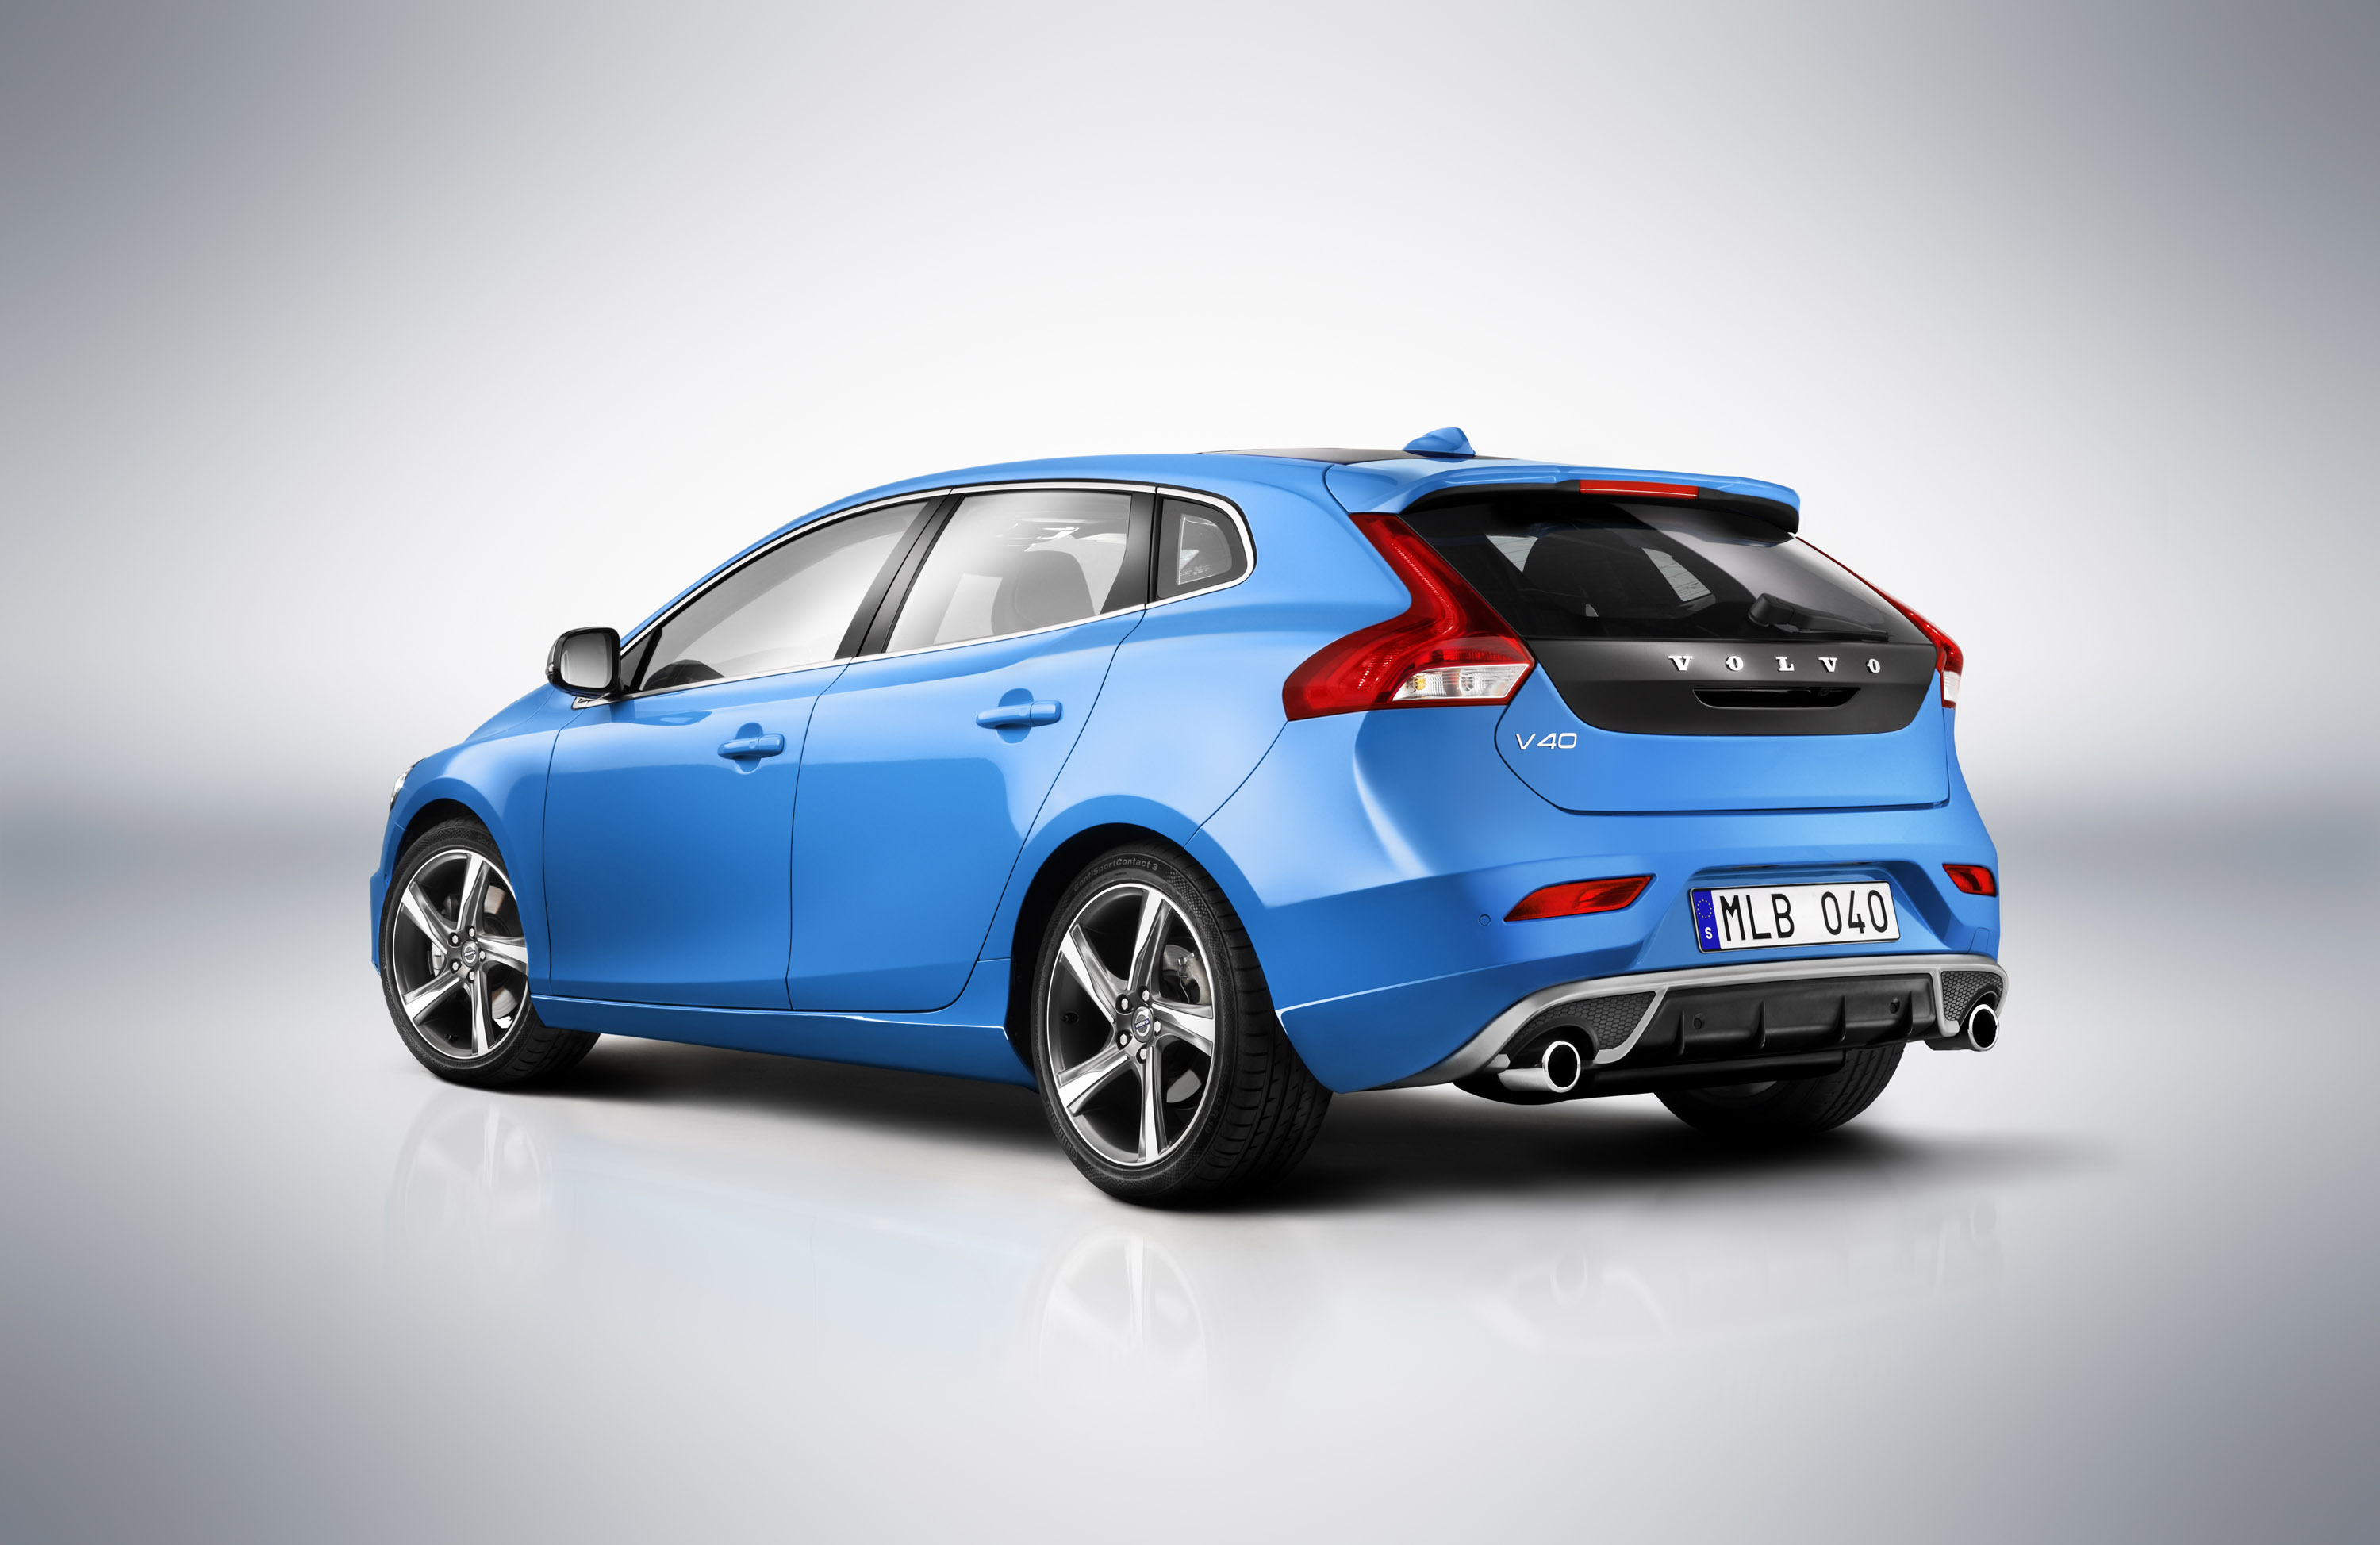 2013 volvo v40 r design and cross country pricing. Black Bedroom Furniture Sets. Home Design Ideas